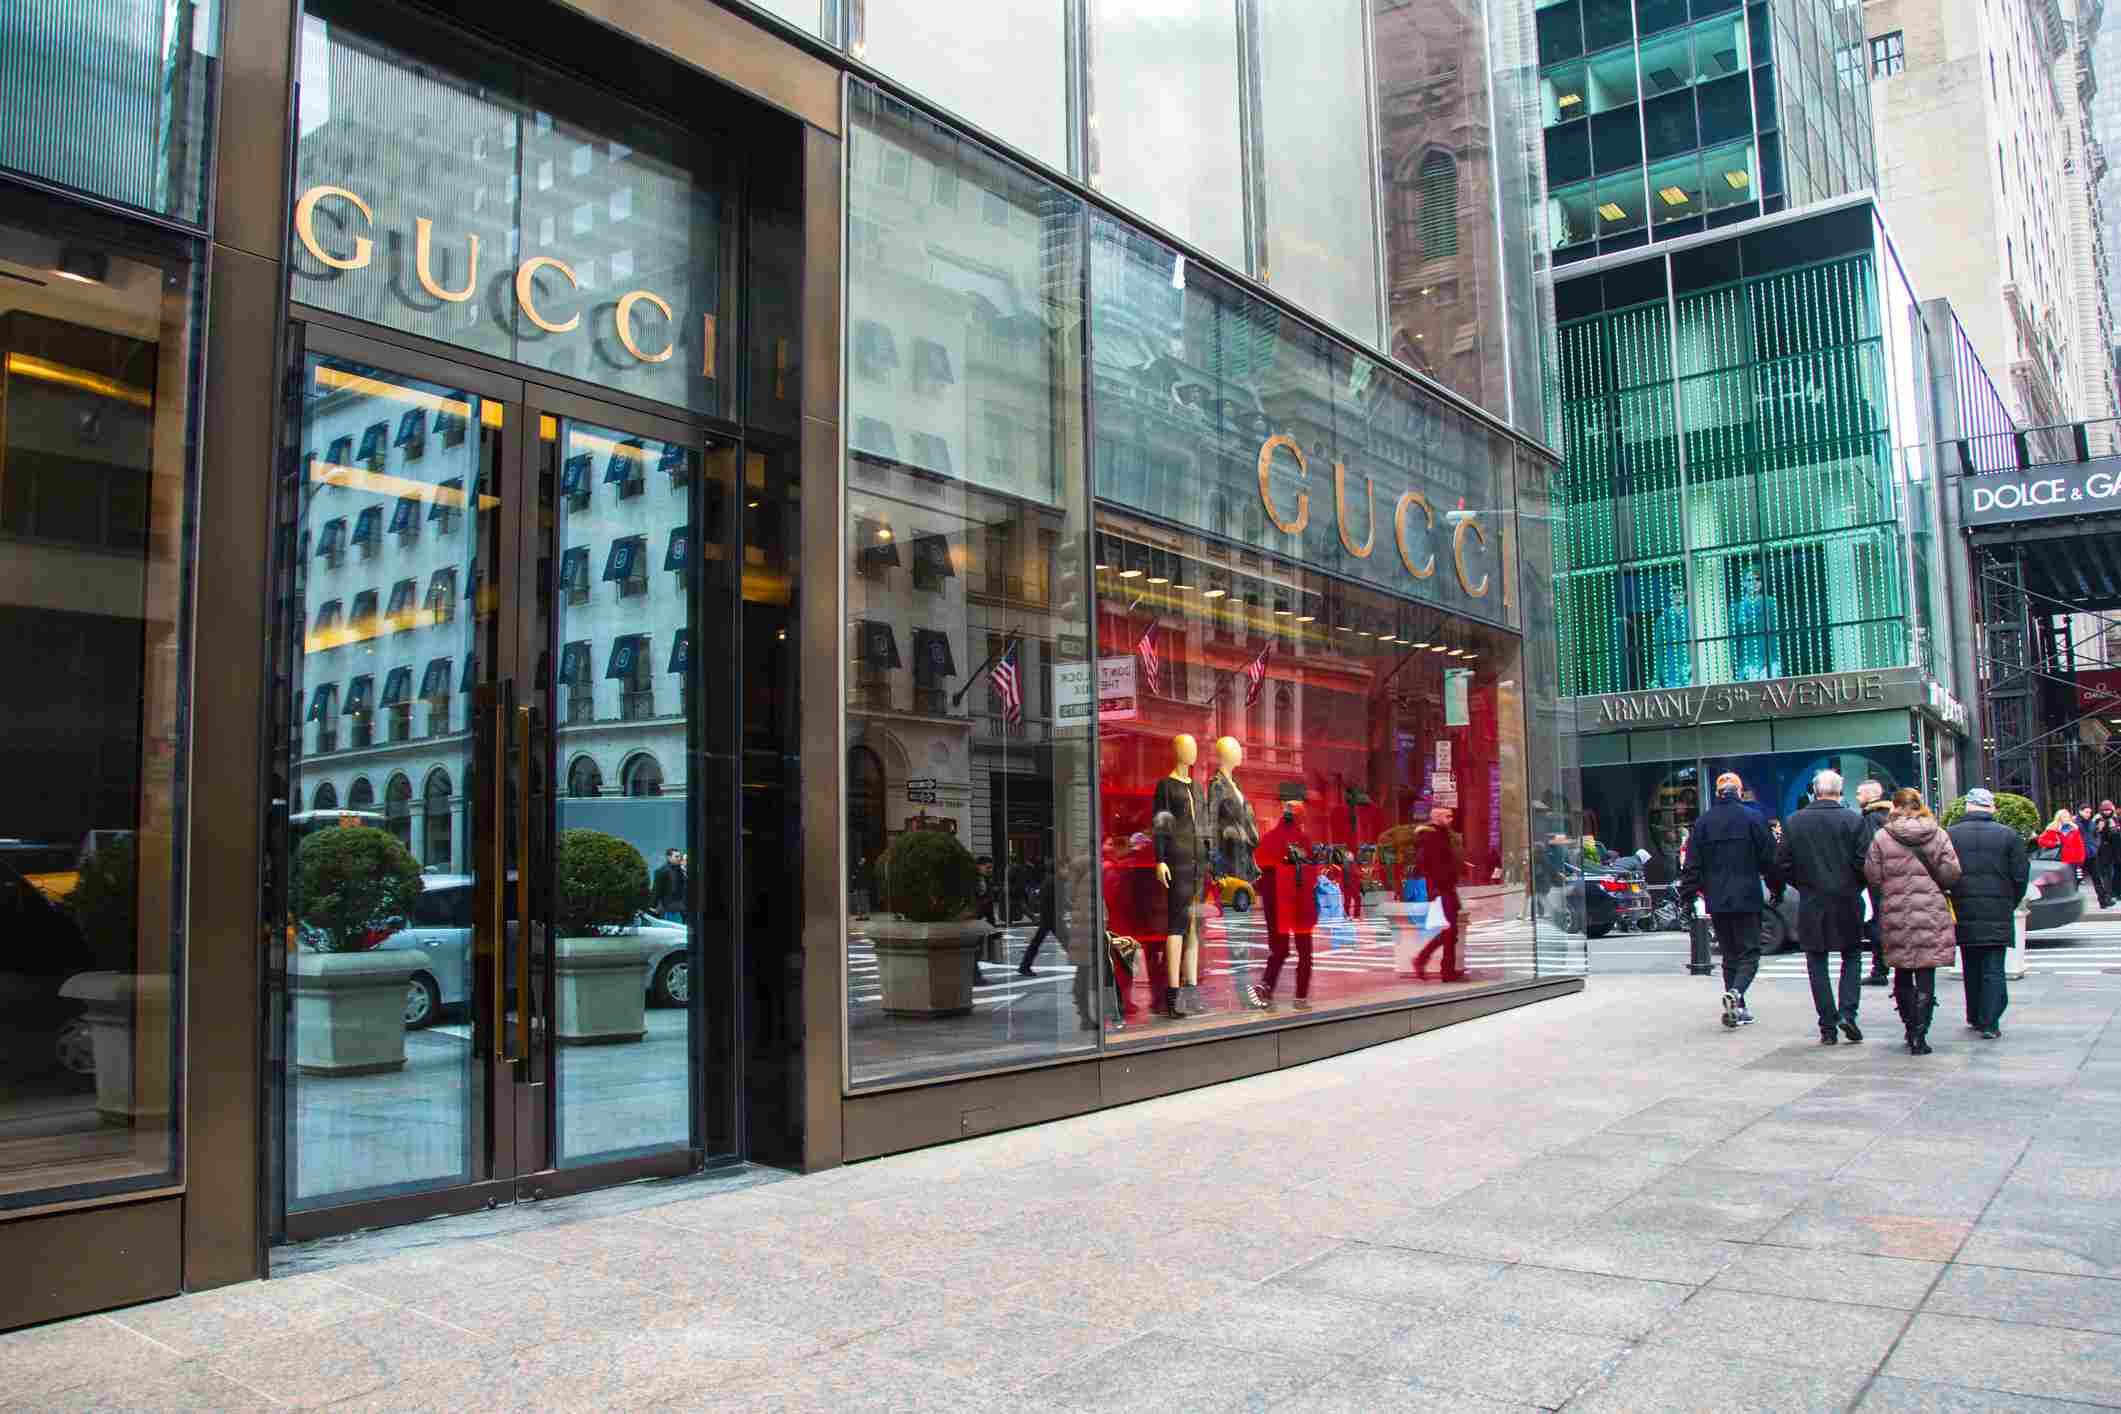 Gucci 5th ave nyc